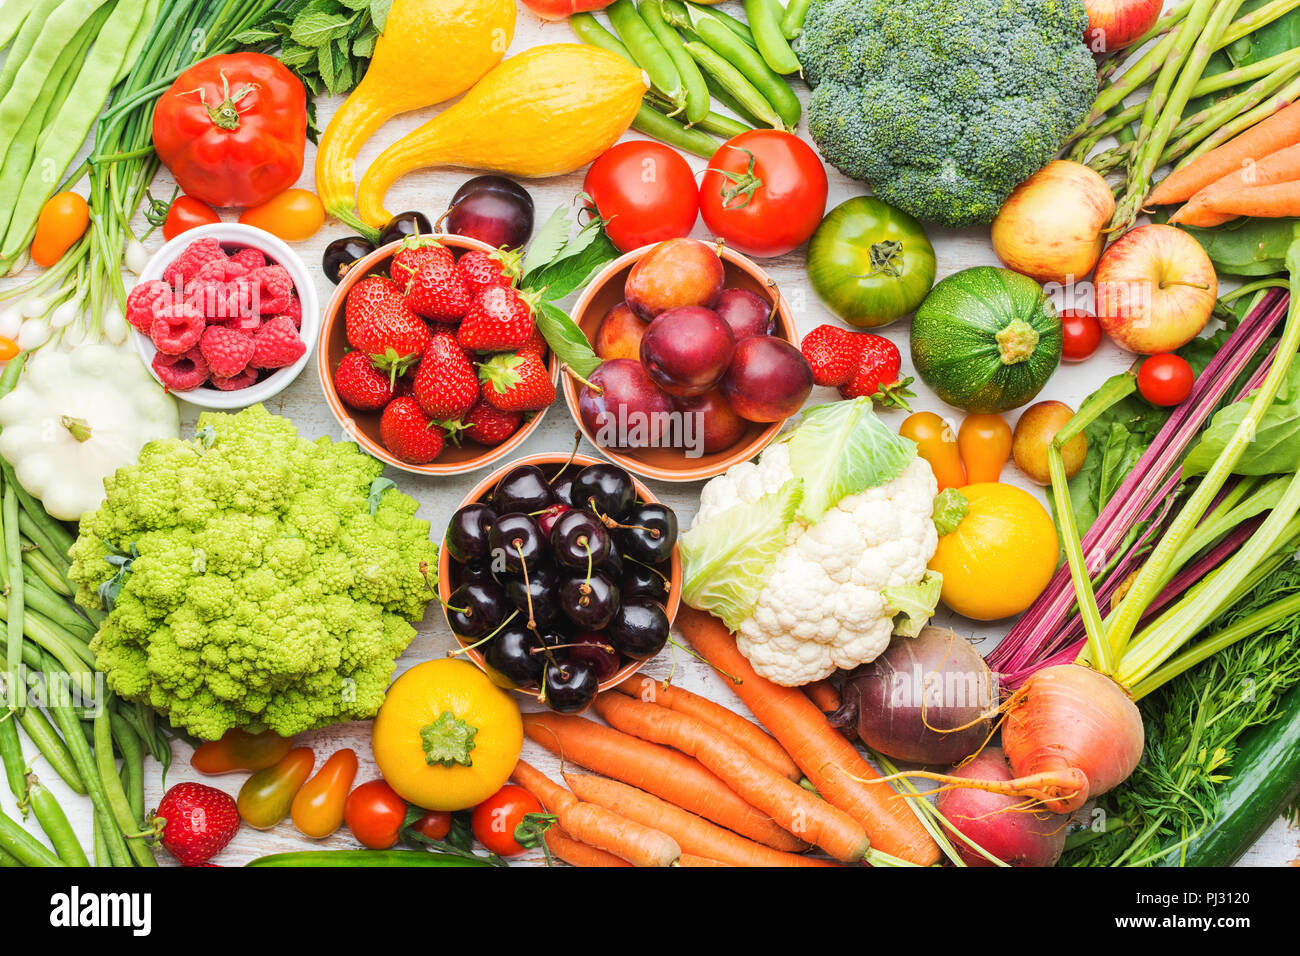 Summer fruits vegetables berries background, apples cherries peaches strawberries cabbage broccoli cauliflower squash tomatoes carrots spring onions beetroot, top view, selective focus - Stock Image